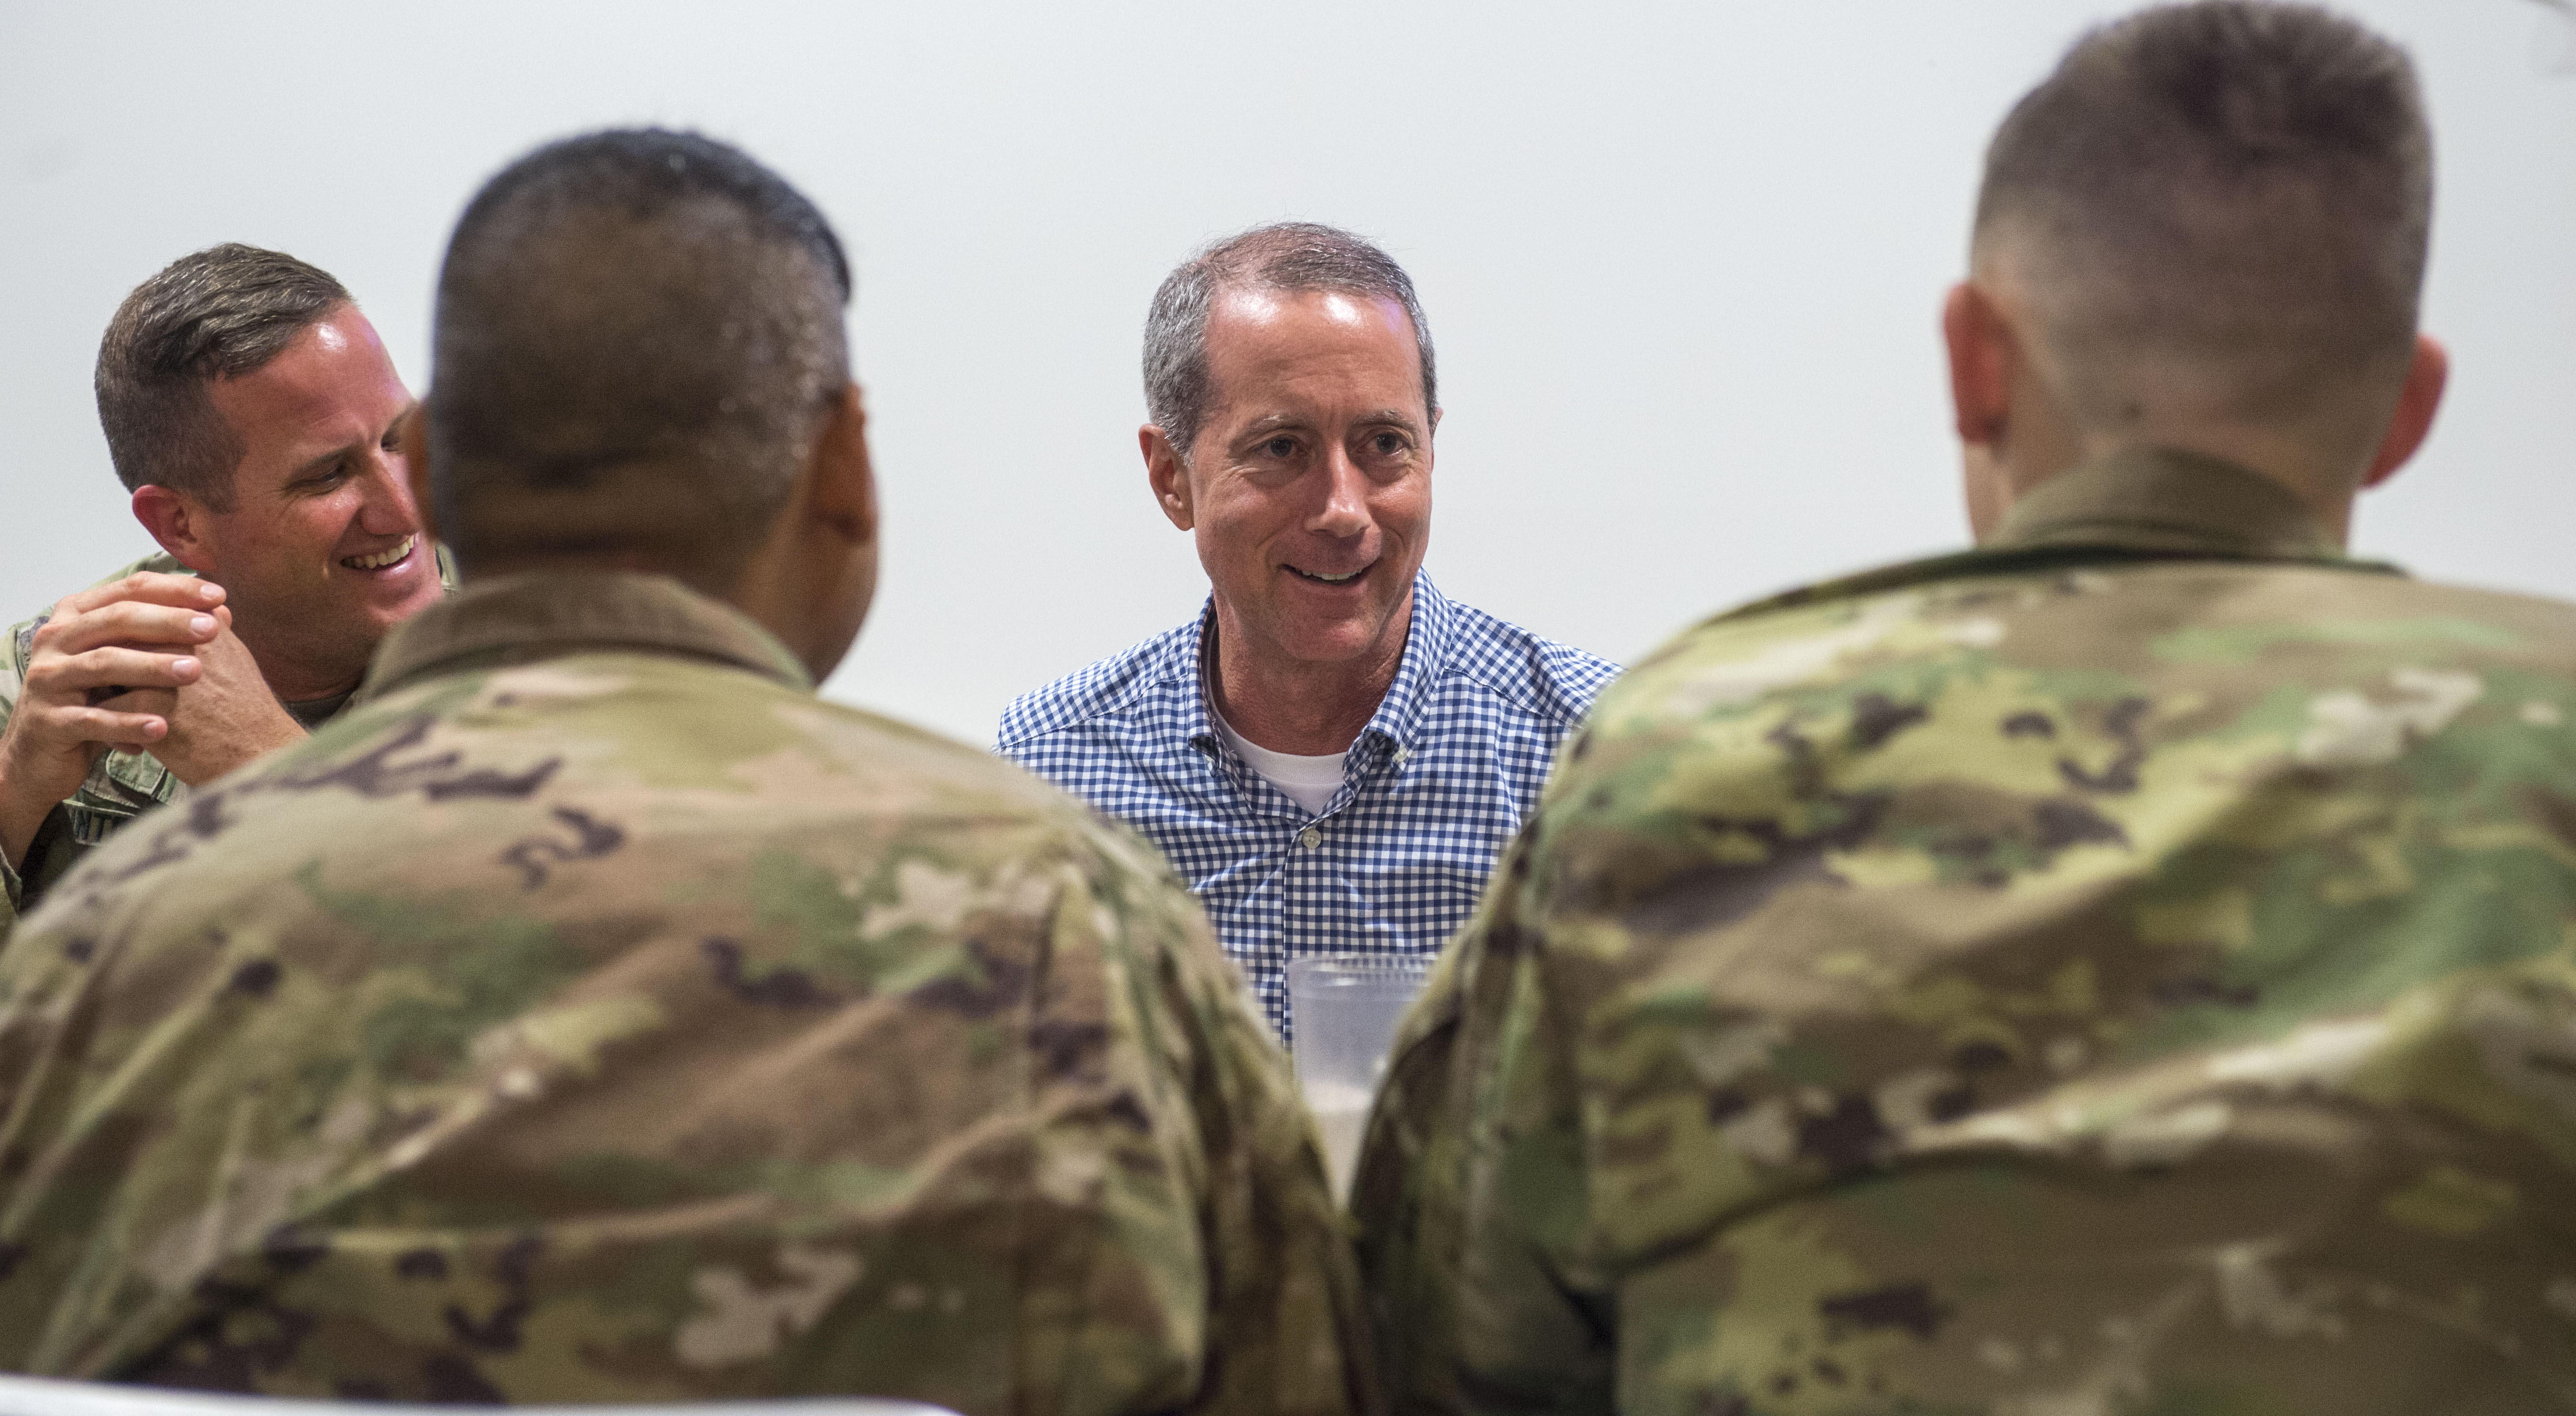 U.S. Rep. Mac Thornberry, 13th District of Texas, talks with service members deployed to Camp Lemonnier, Djibouti, during a visit to the Combined Joint Task Force - Horn of Africa (CJTF-HOA) March 24, 2018. Thornberry, who is the U.S. House of Representatives Armed Services Committee Chairman, stopped by Camp Lemonnier before visiting other locations within the CJTF-HOA area of responsibility. The Armed Services Committee has the responsibility to oversee the Pentagon, all military services, and all Department of Defense agencies, including their budgets and policies. (U.S. Air Force photo by Staff Sgt. Timothy Moore)